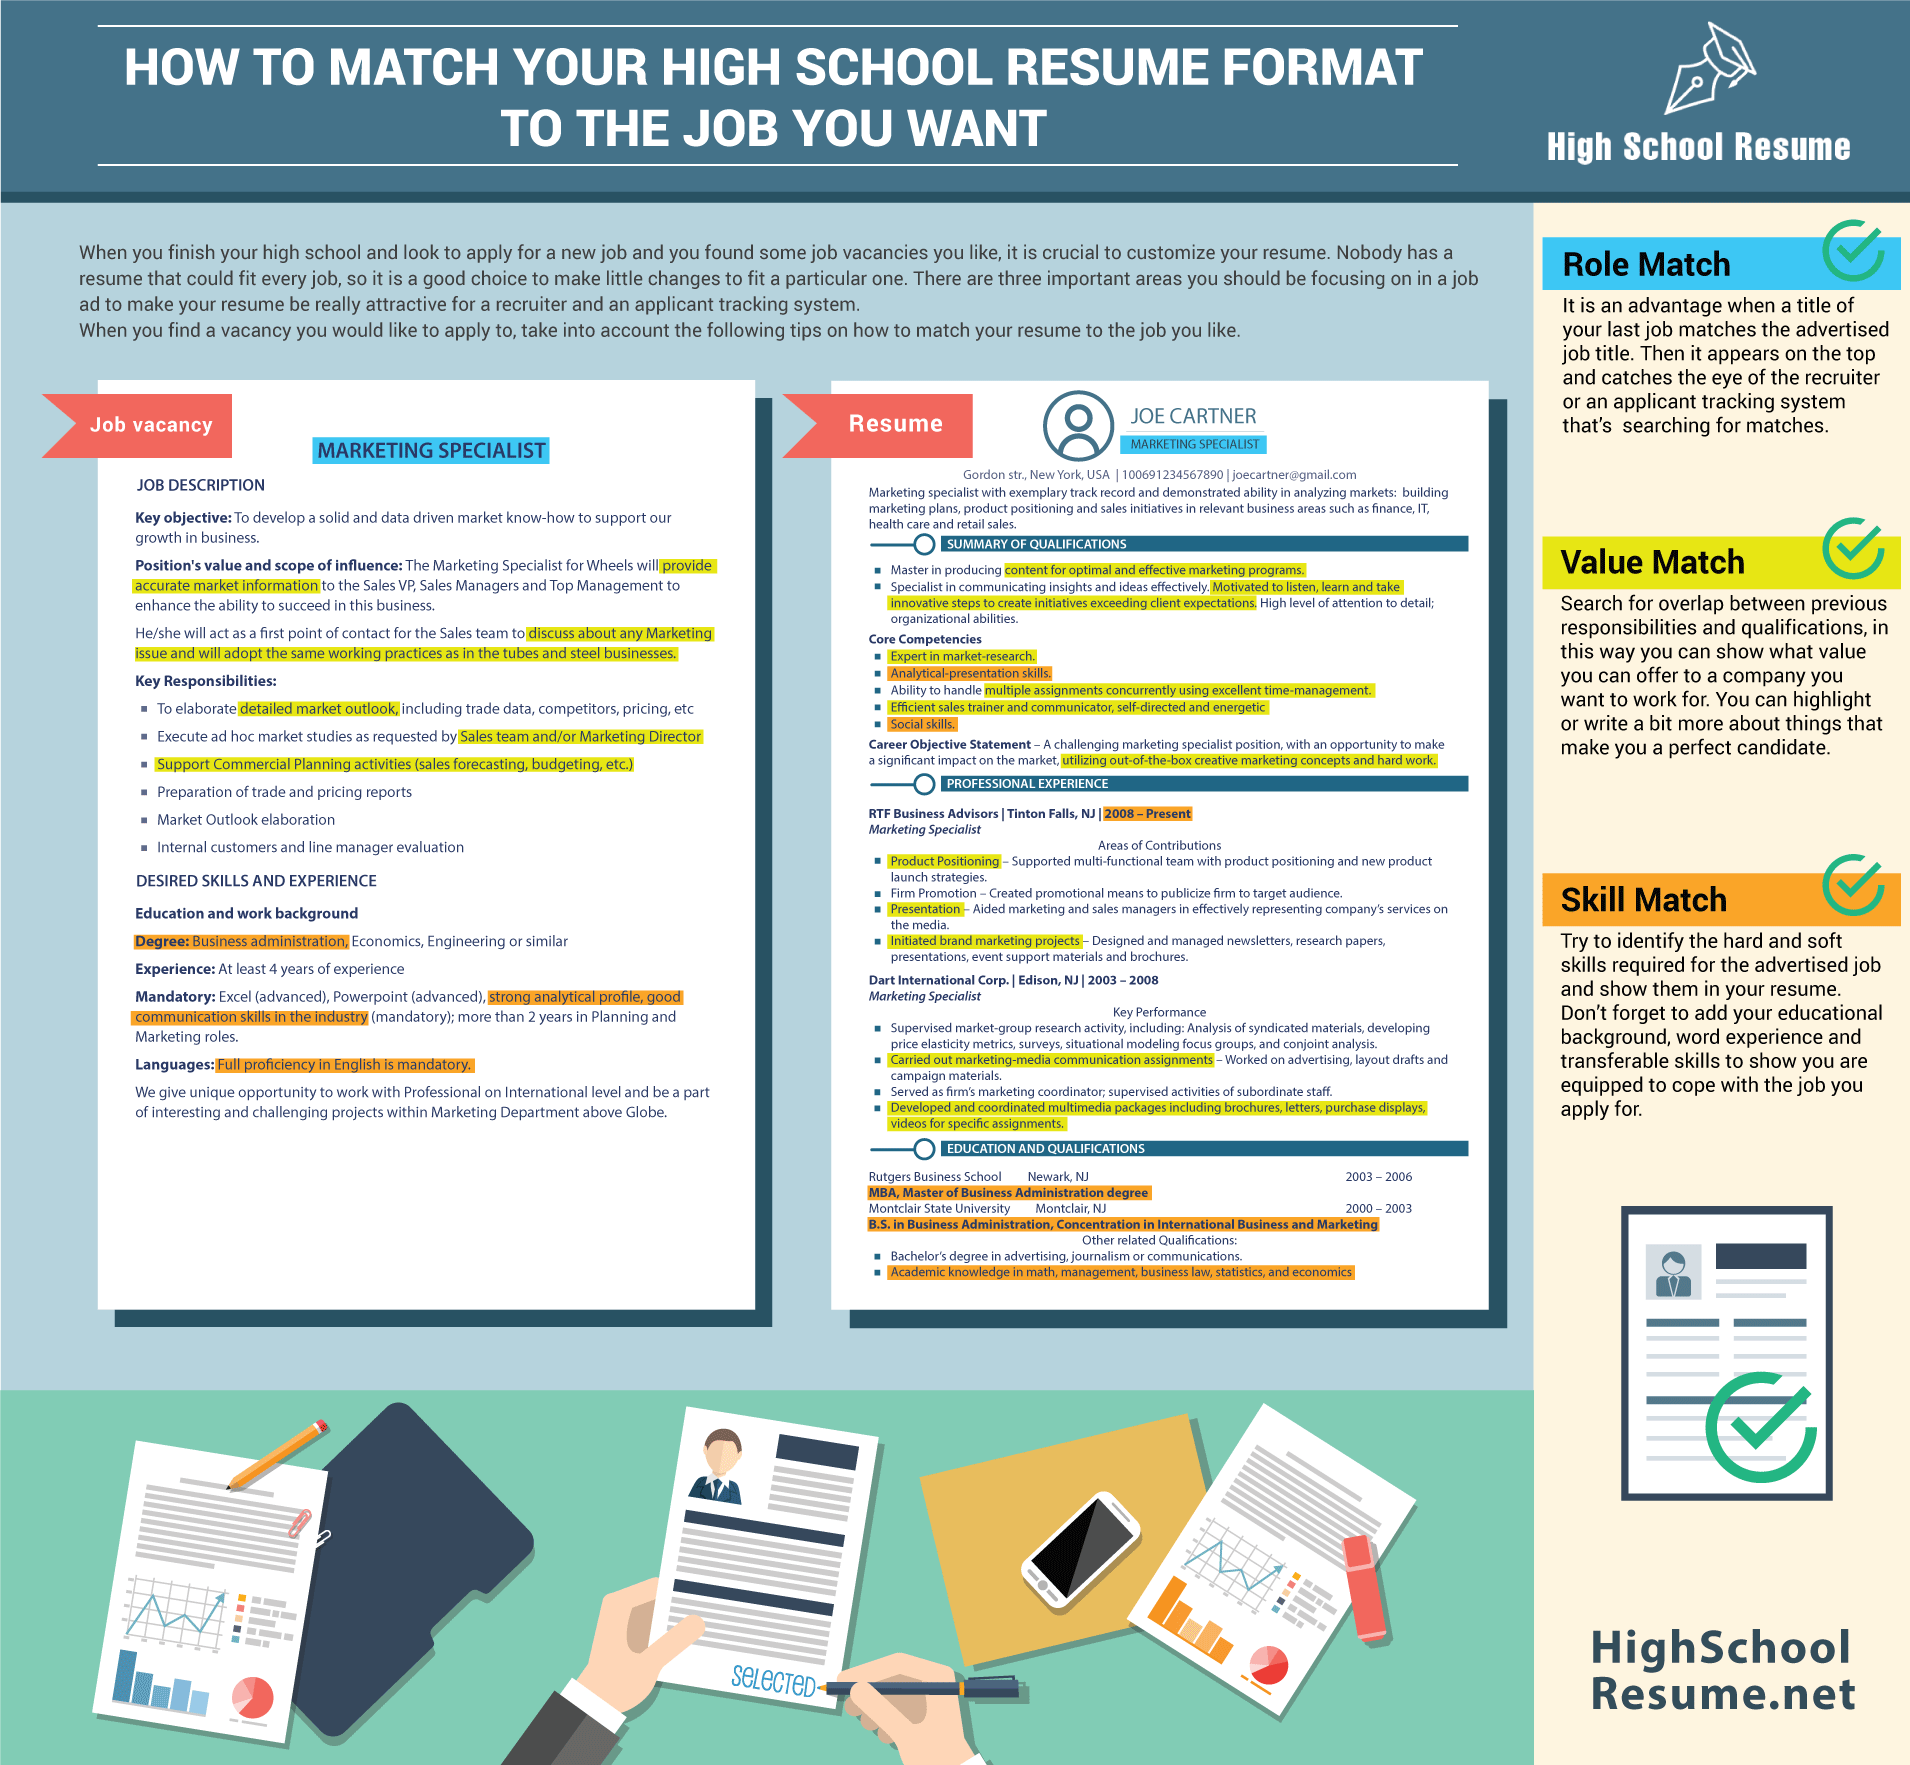 How to Match Your High School Resume Format to the Job You Want